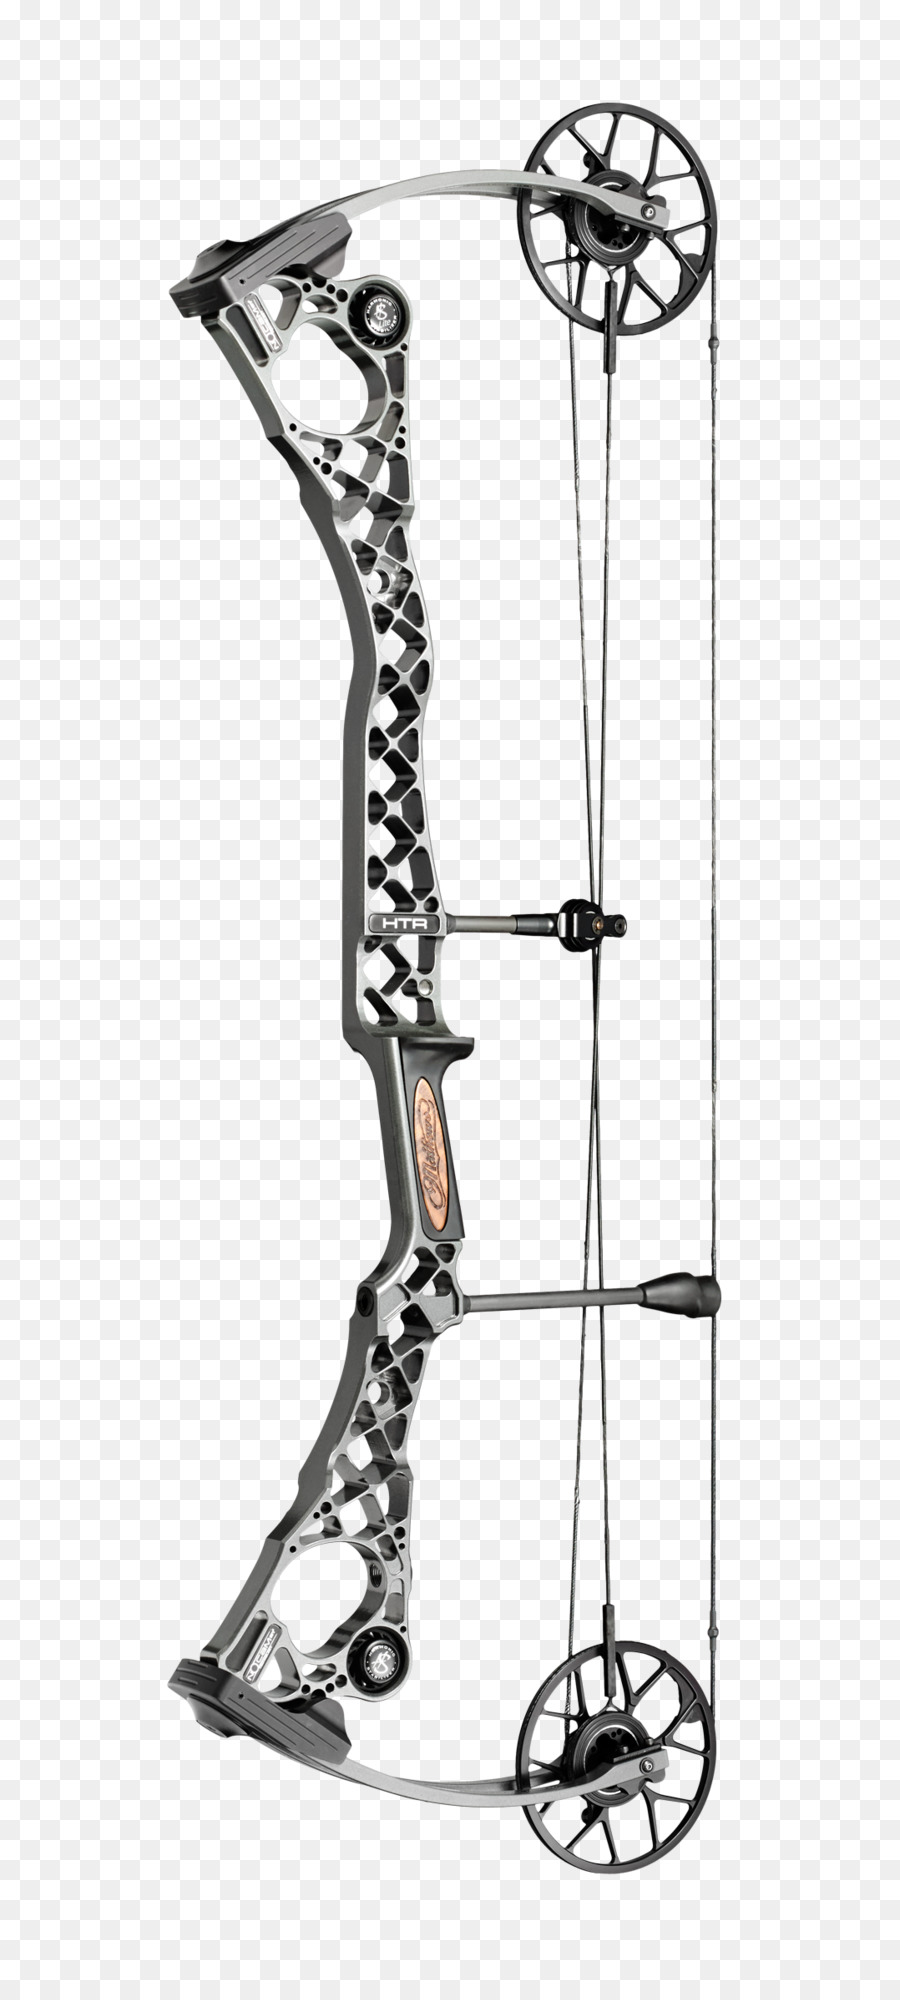 Mathews Archery, Inc  Bowhunting Cam Compound Bows - archery png